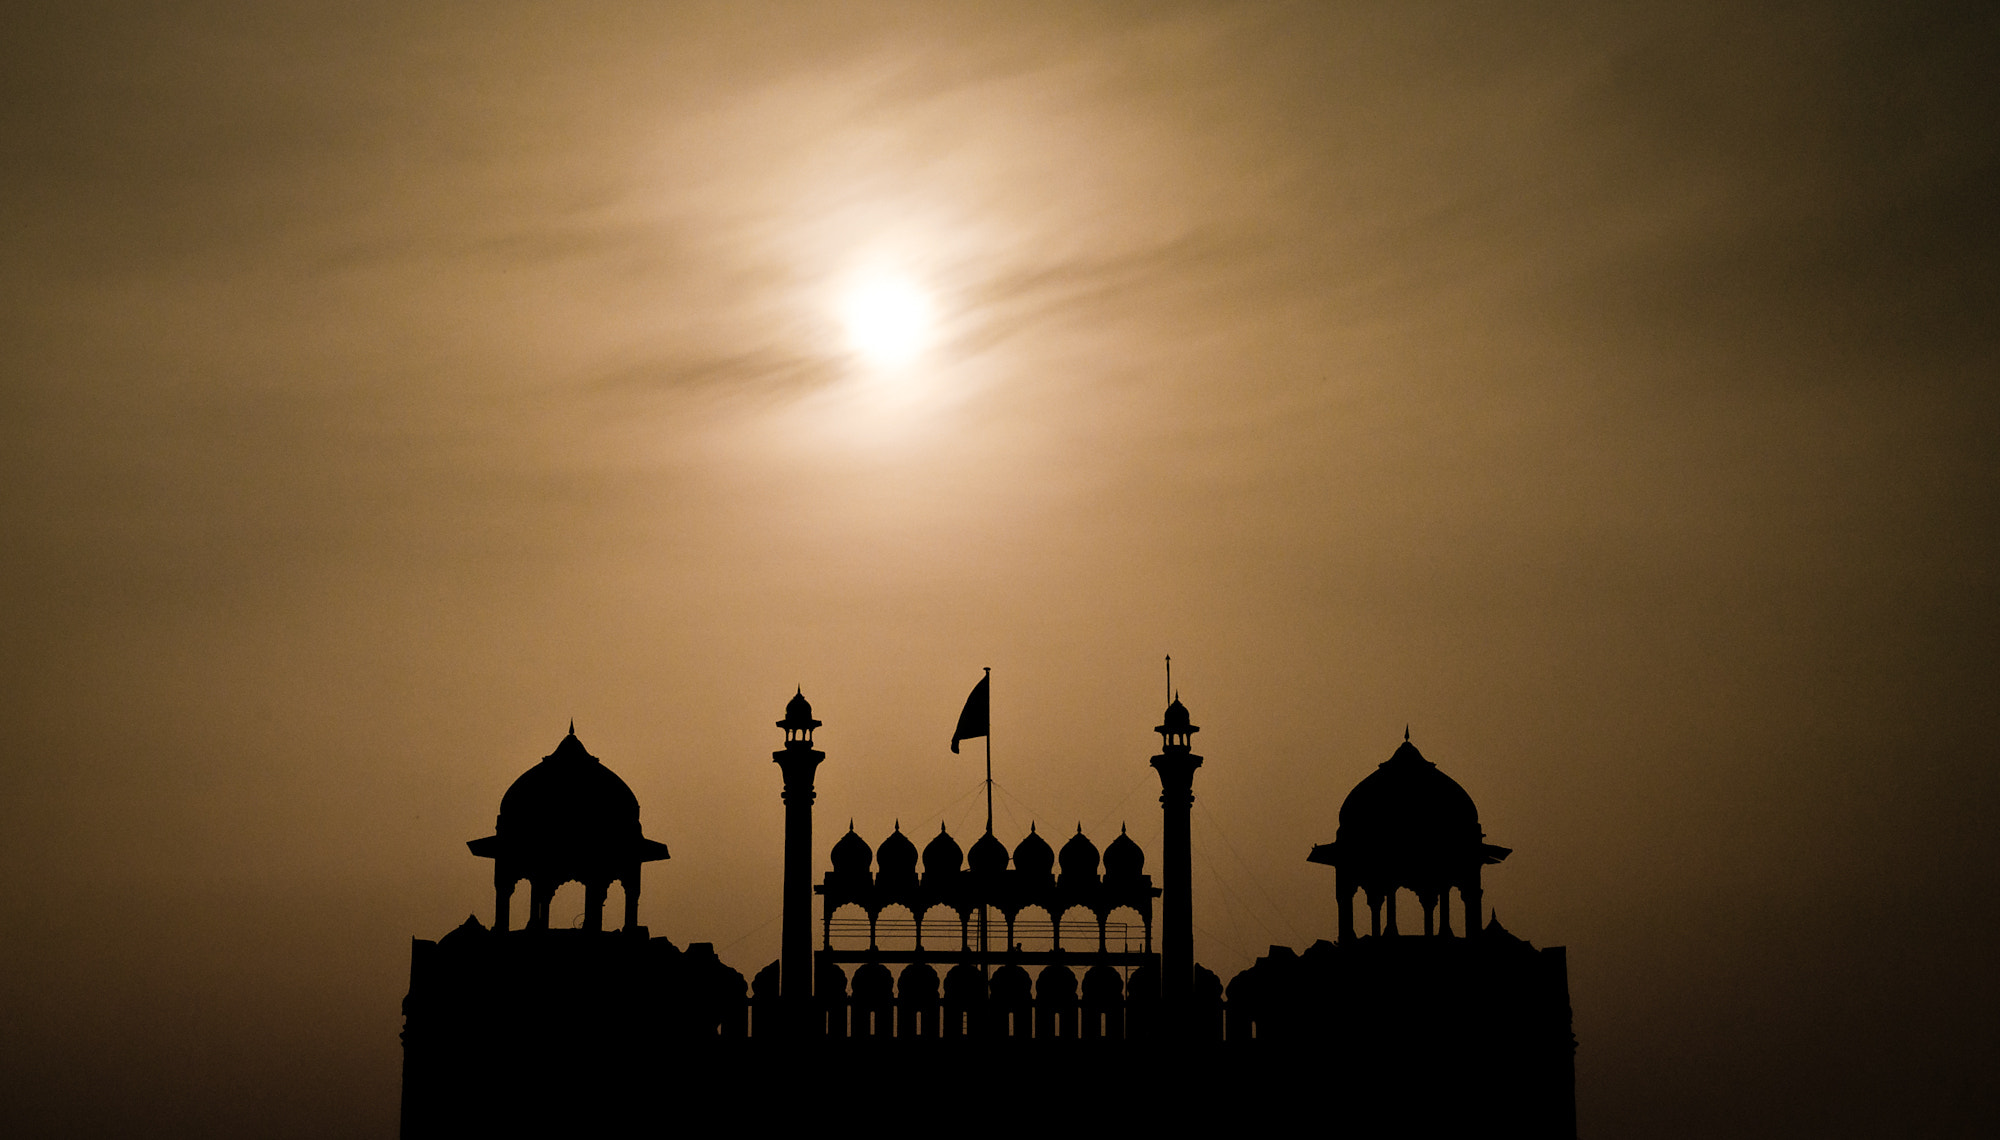 Photograph Red Fort Silhouette by shishir thakur on 500px